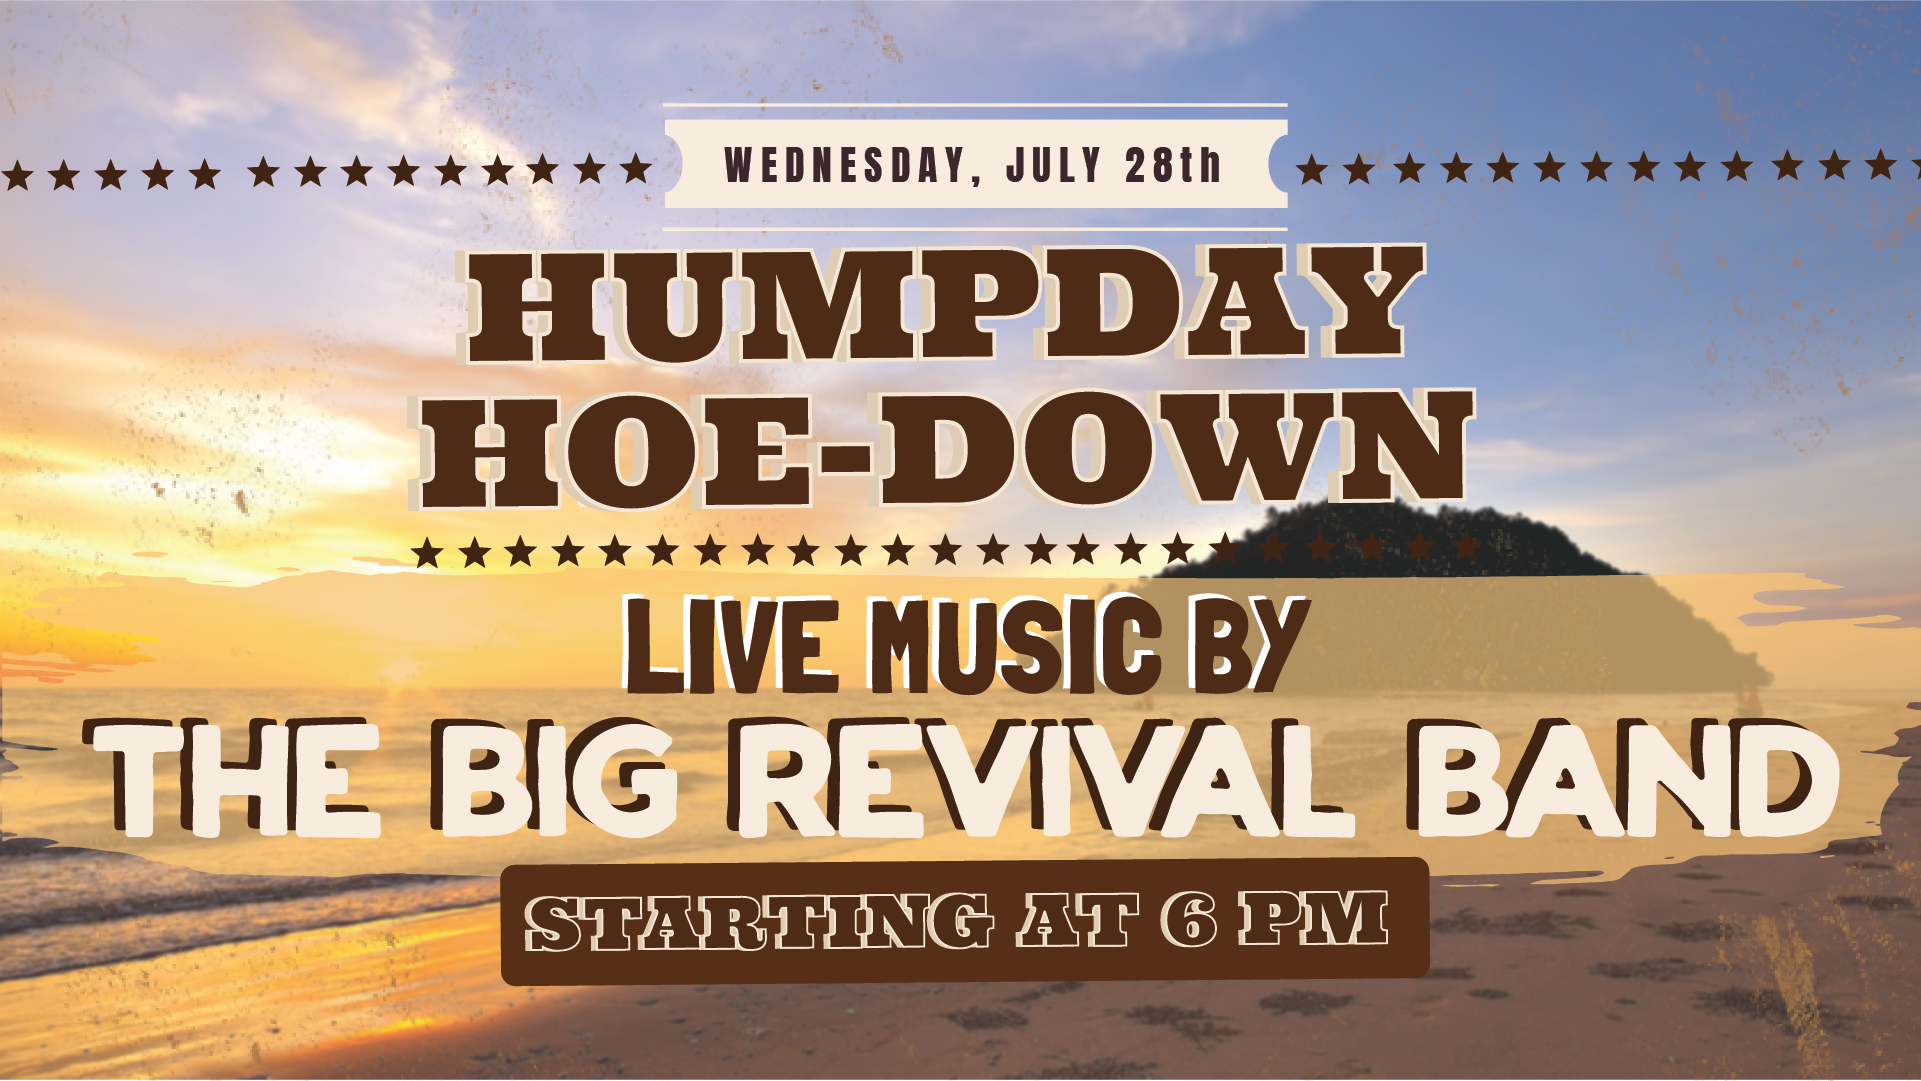 Wednesday July 28th with The Big Revival Band 6:00 PM